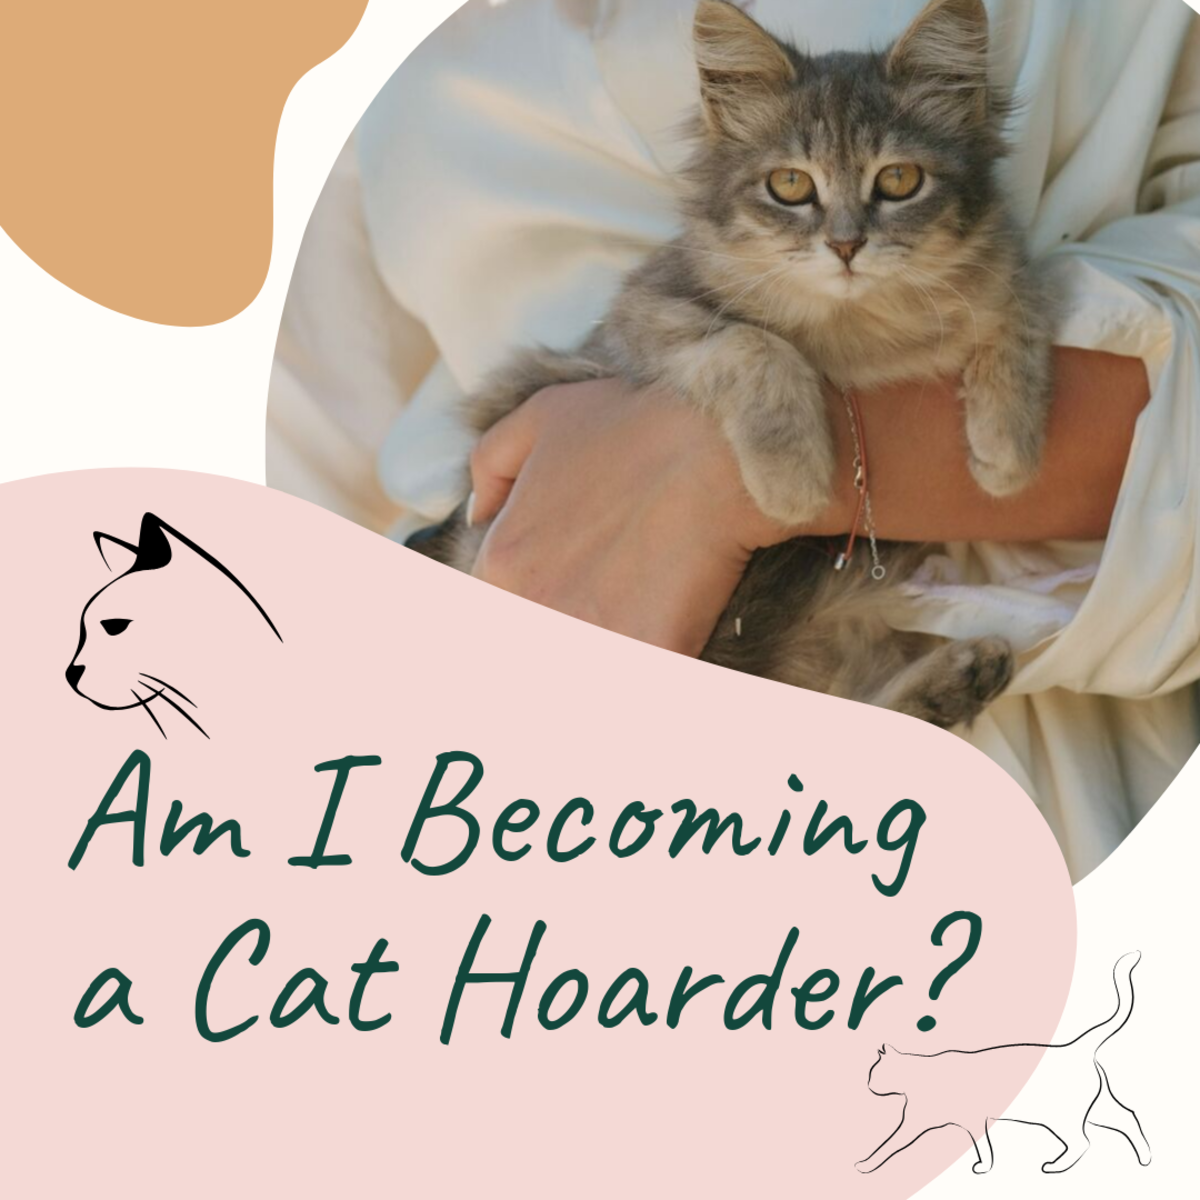 Am I Becoming a Cat Hoarder? Questions to Ask Yourself (or a Friend)